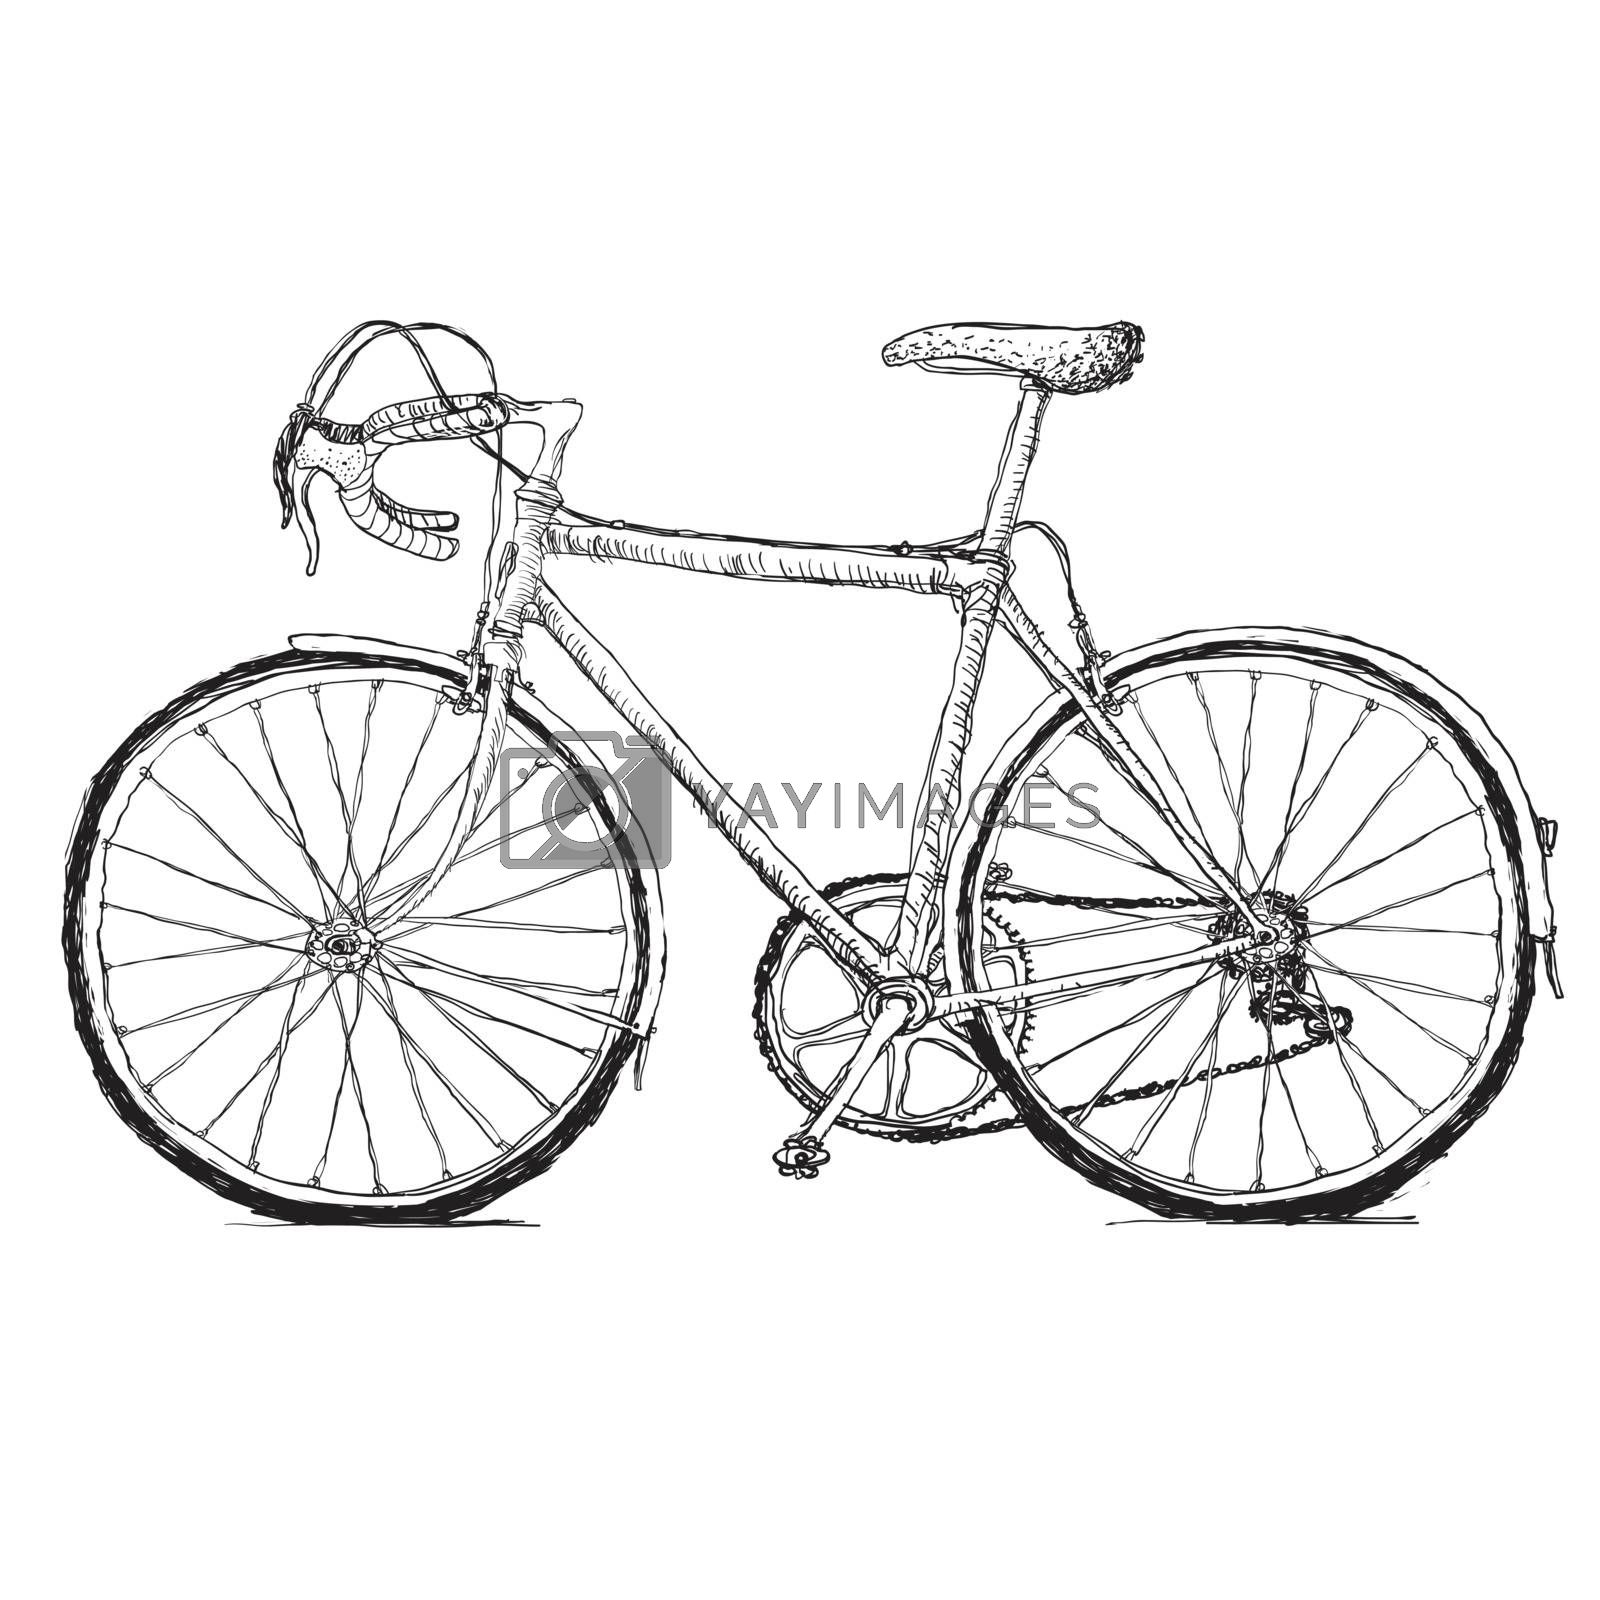 Royalty free image of Vintage road bicycle hand drawn illustration by pashabo